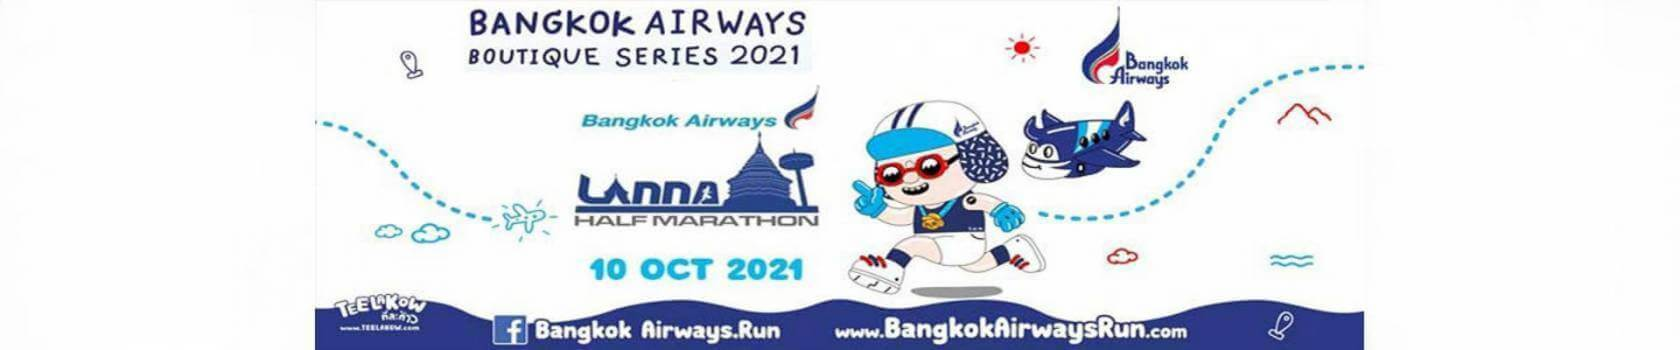 Bangkok Airways Lanna Half Marathon 2021